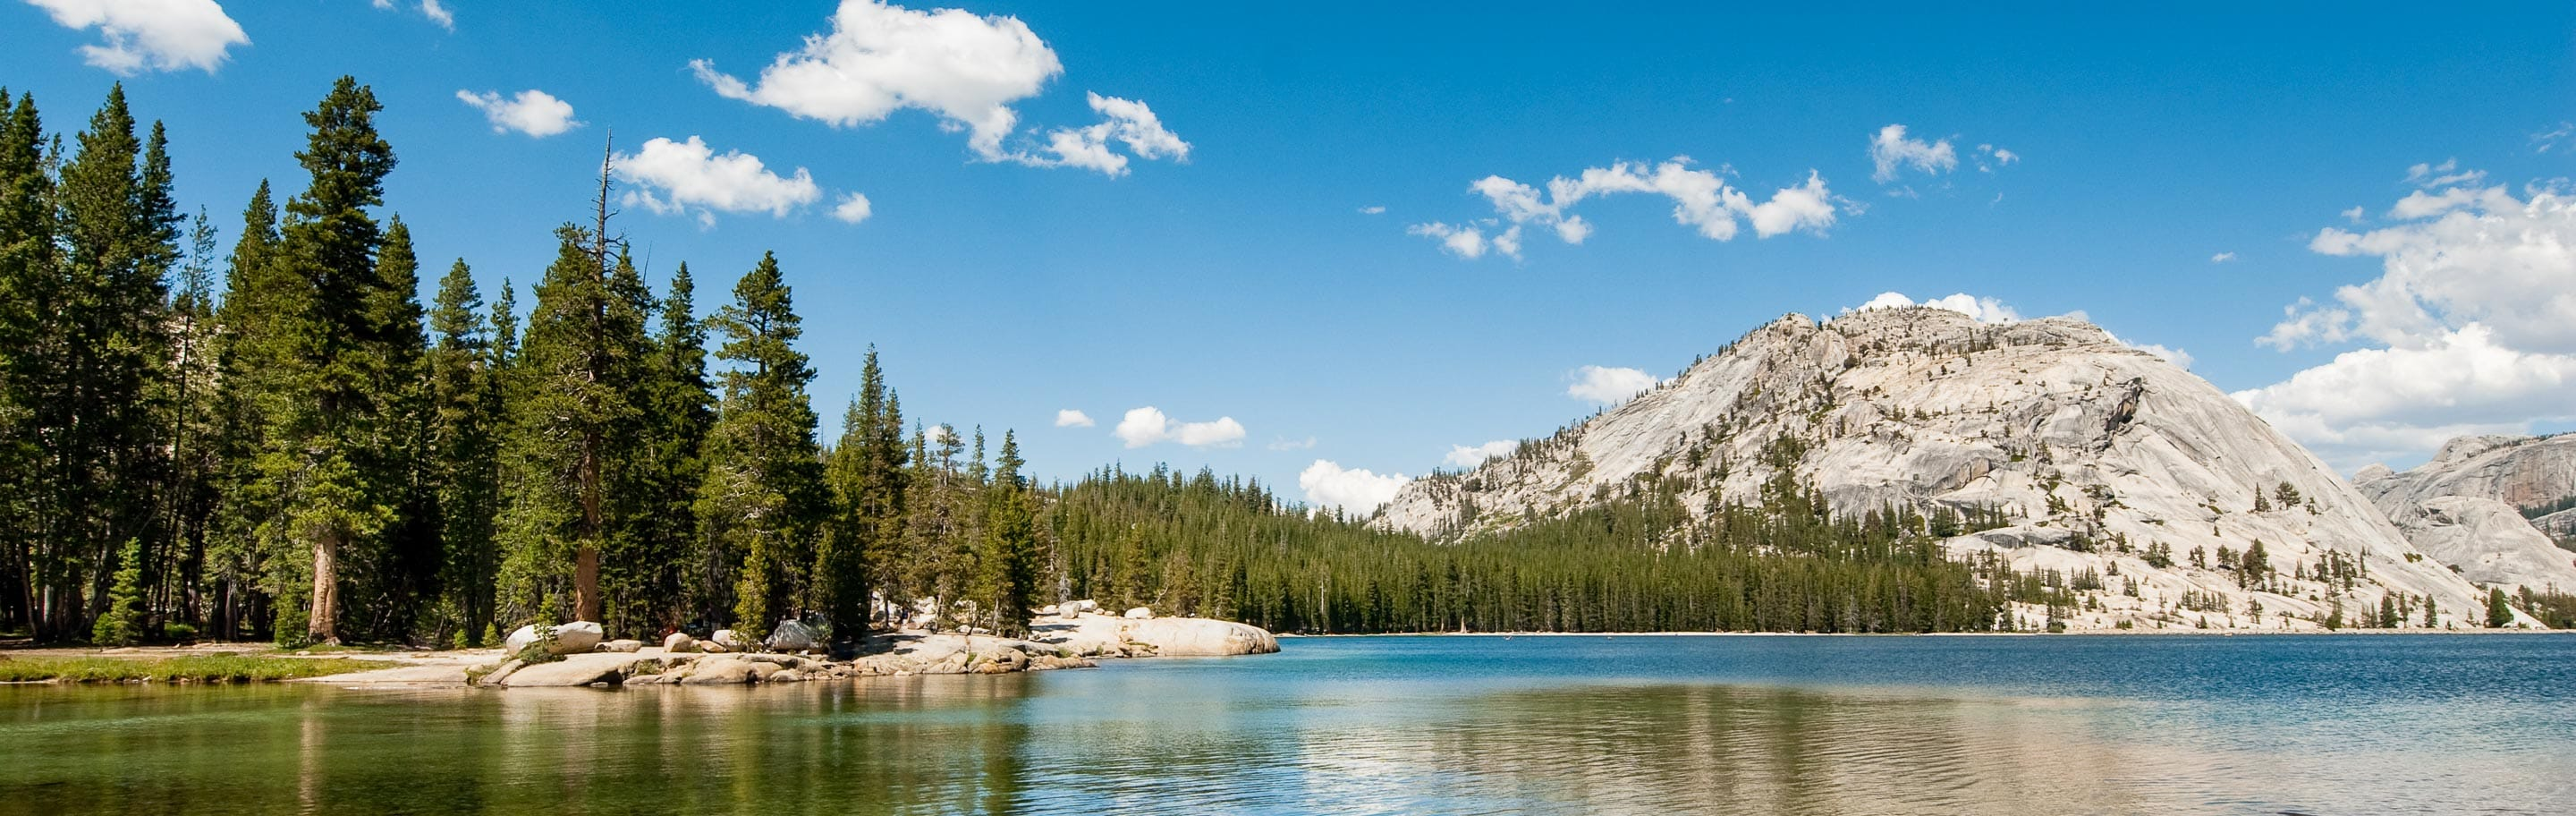 Wide view of Tenaya Lake at Yosemite National Park